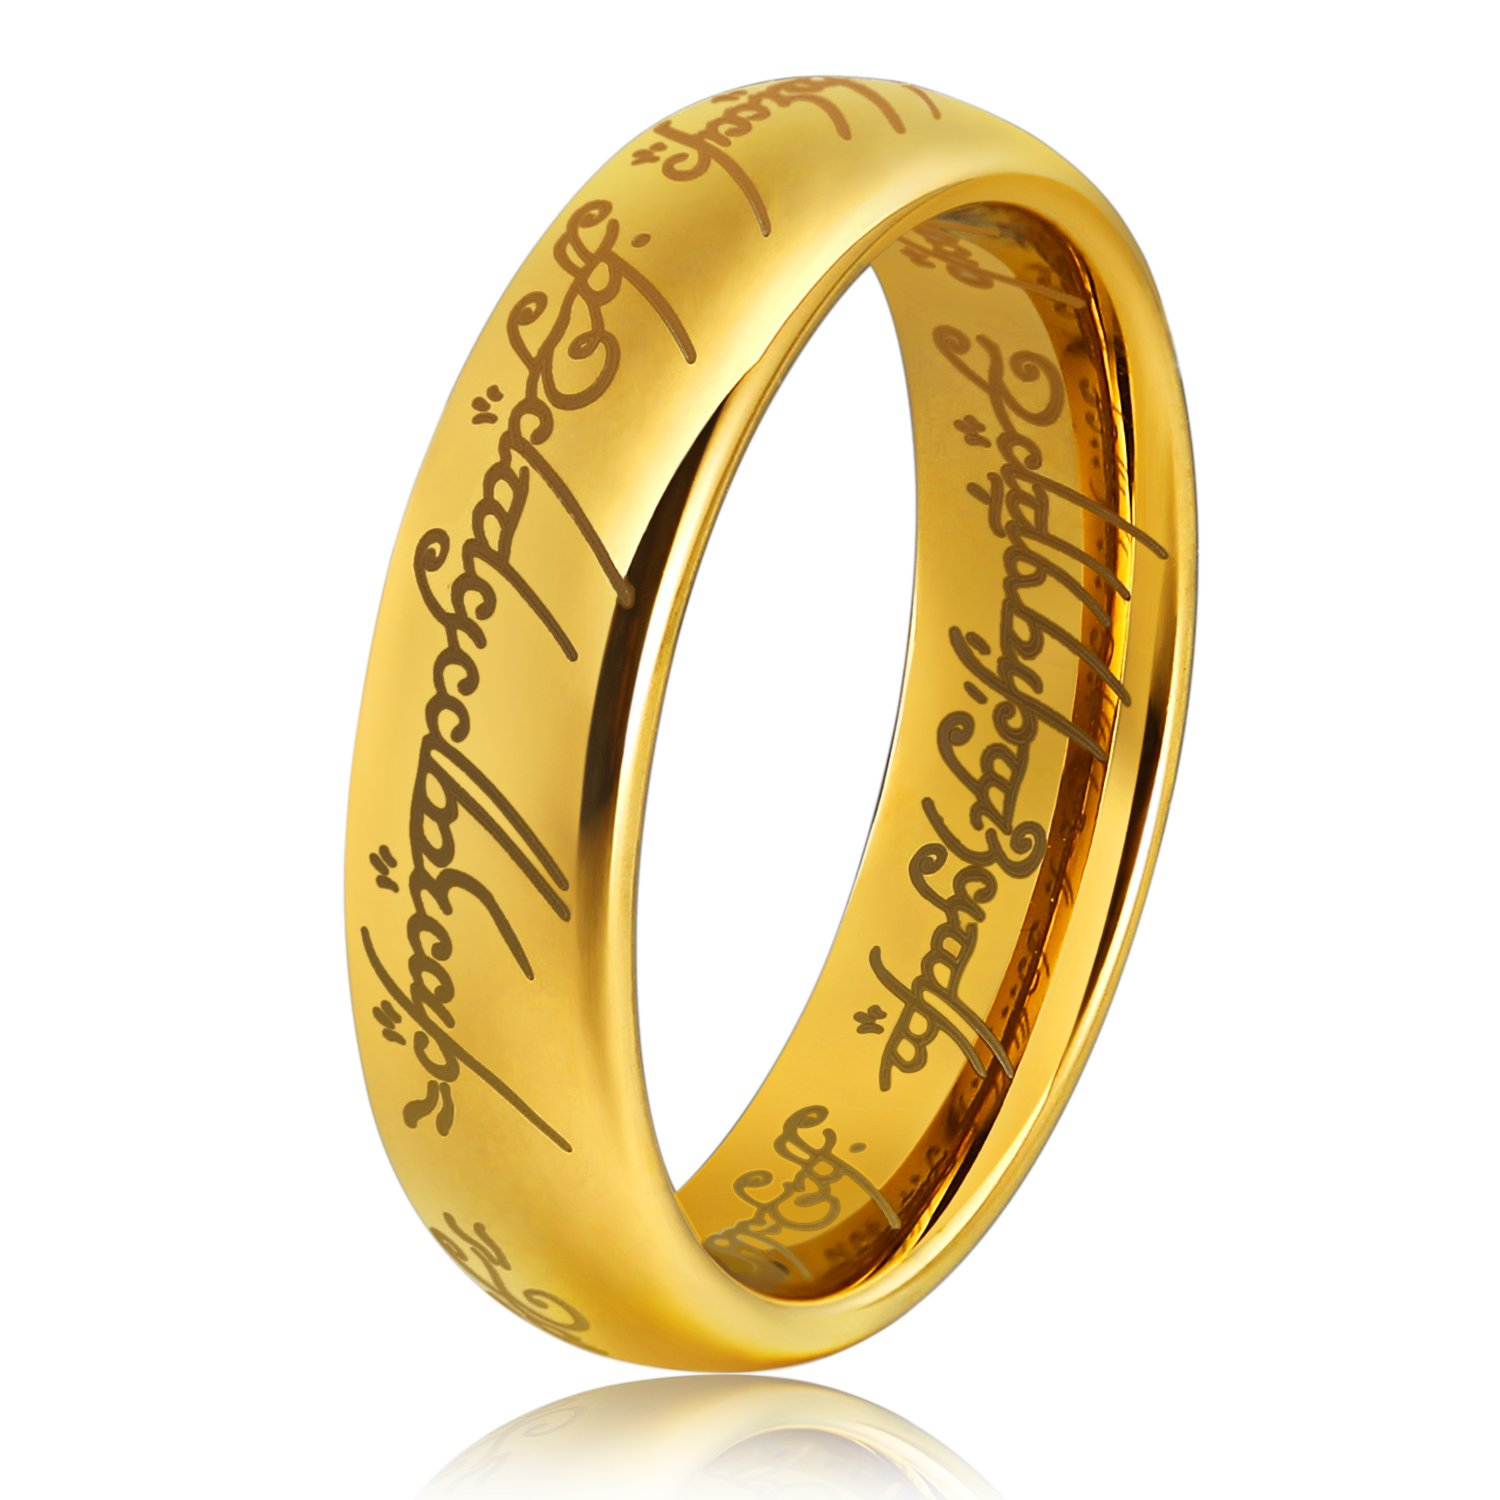 Lord of the Rings for Men Women 6mm Gold Womens Mens Wedding Engagement Promise Band Tungsten Carbide Ring Sets Prayer Jewelry Gift for Girls Boys Son Dad Mom Boyfriend Girlfriend Size 10